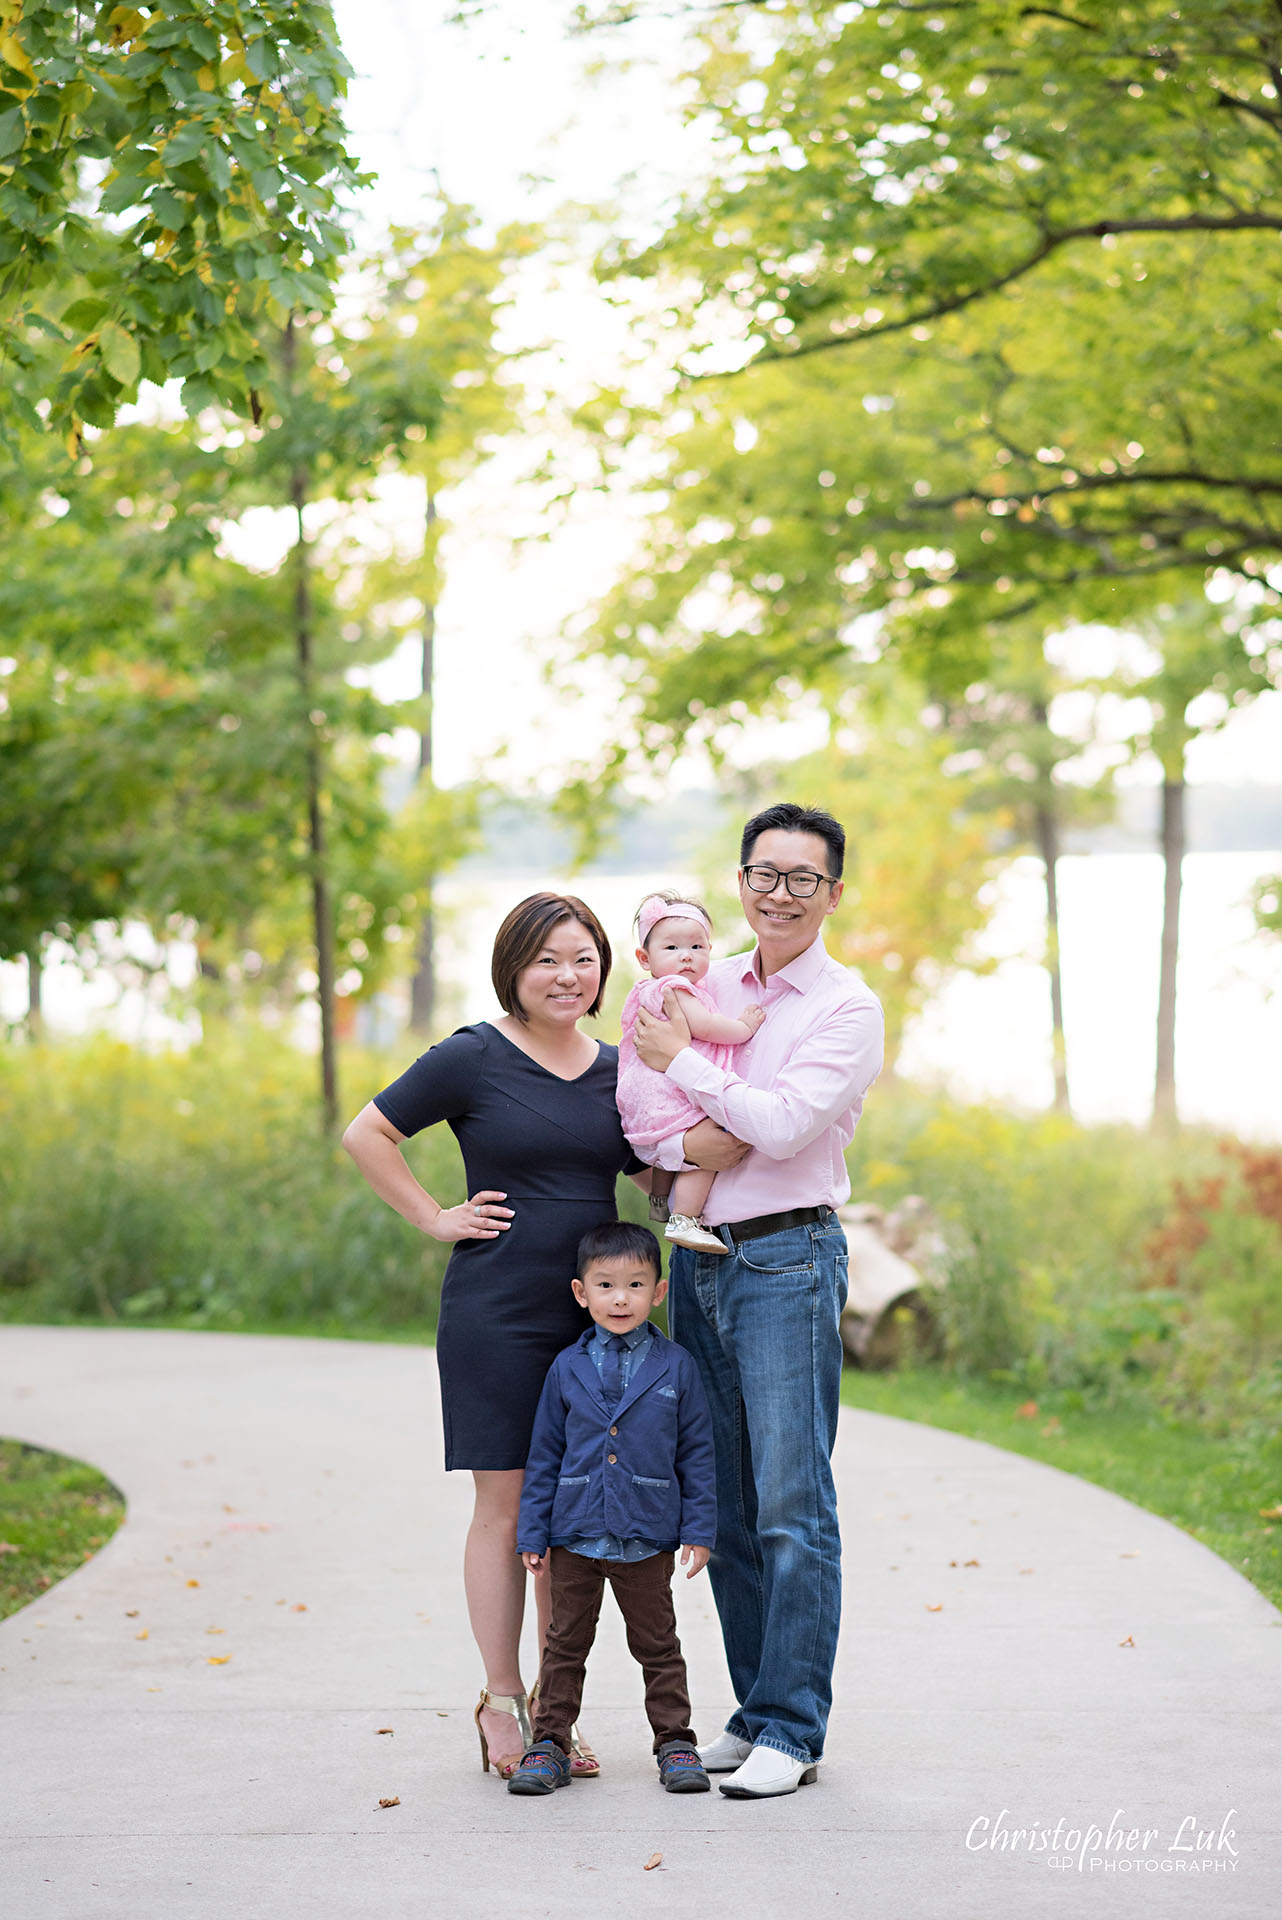 Christopher Luk Toronto Photographer Lake Wilcox Park Family Baby Newborn Richmond Hill Session Mother Father Mom Dad Son Brother Daughter Sister Portrait Smile